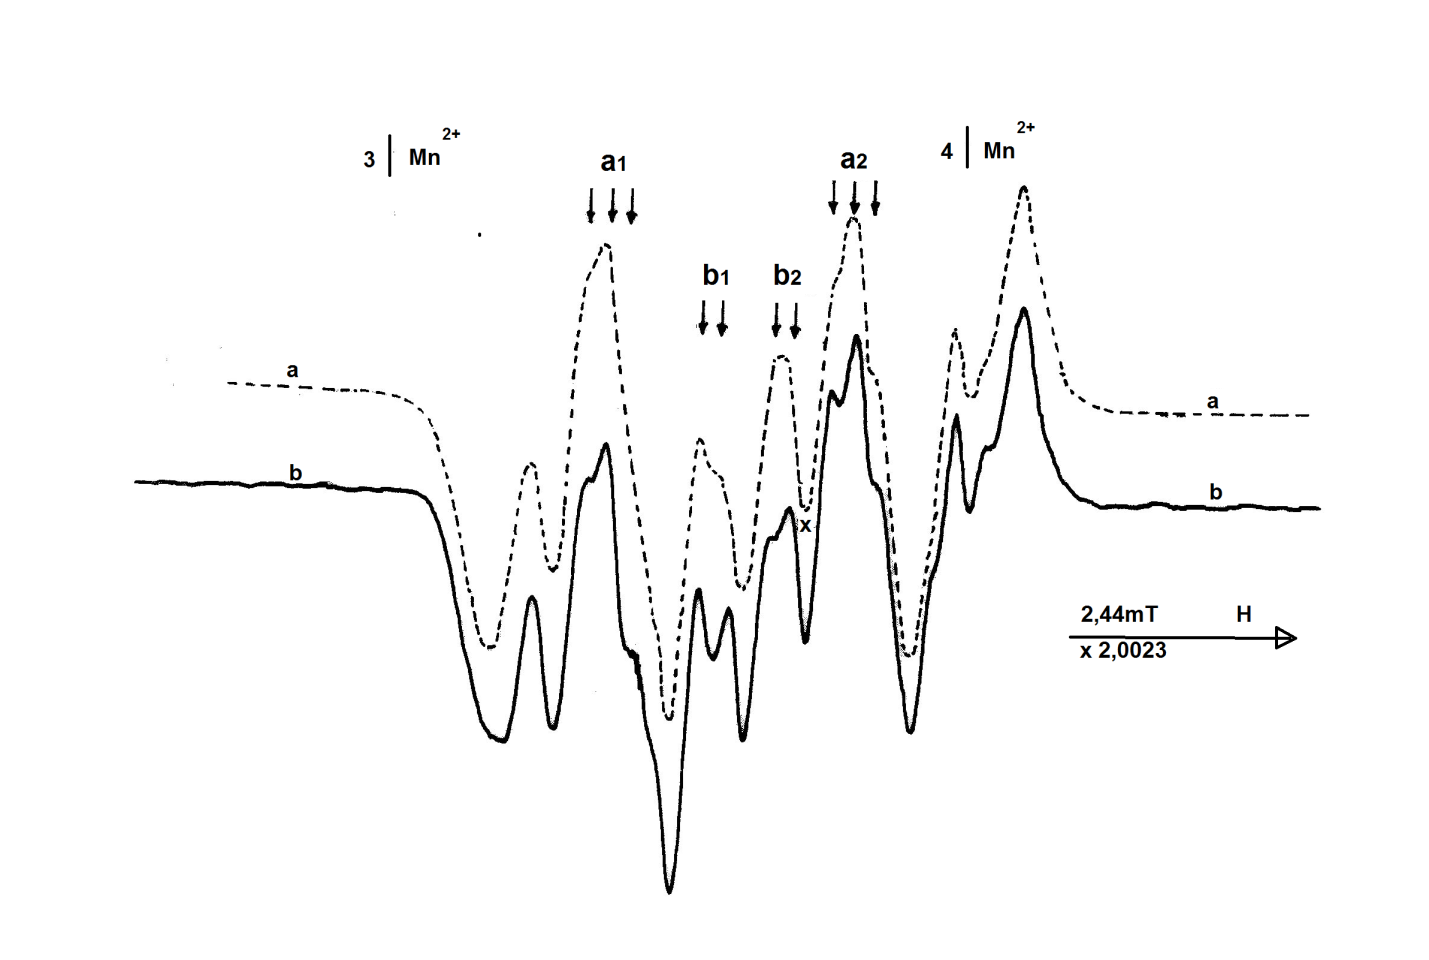 EPR spectrum of irradiated L-a-anhydrous asparagine sample